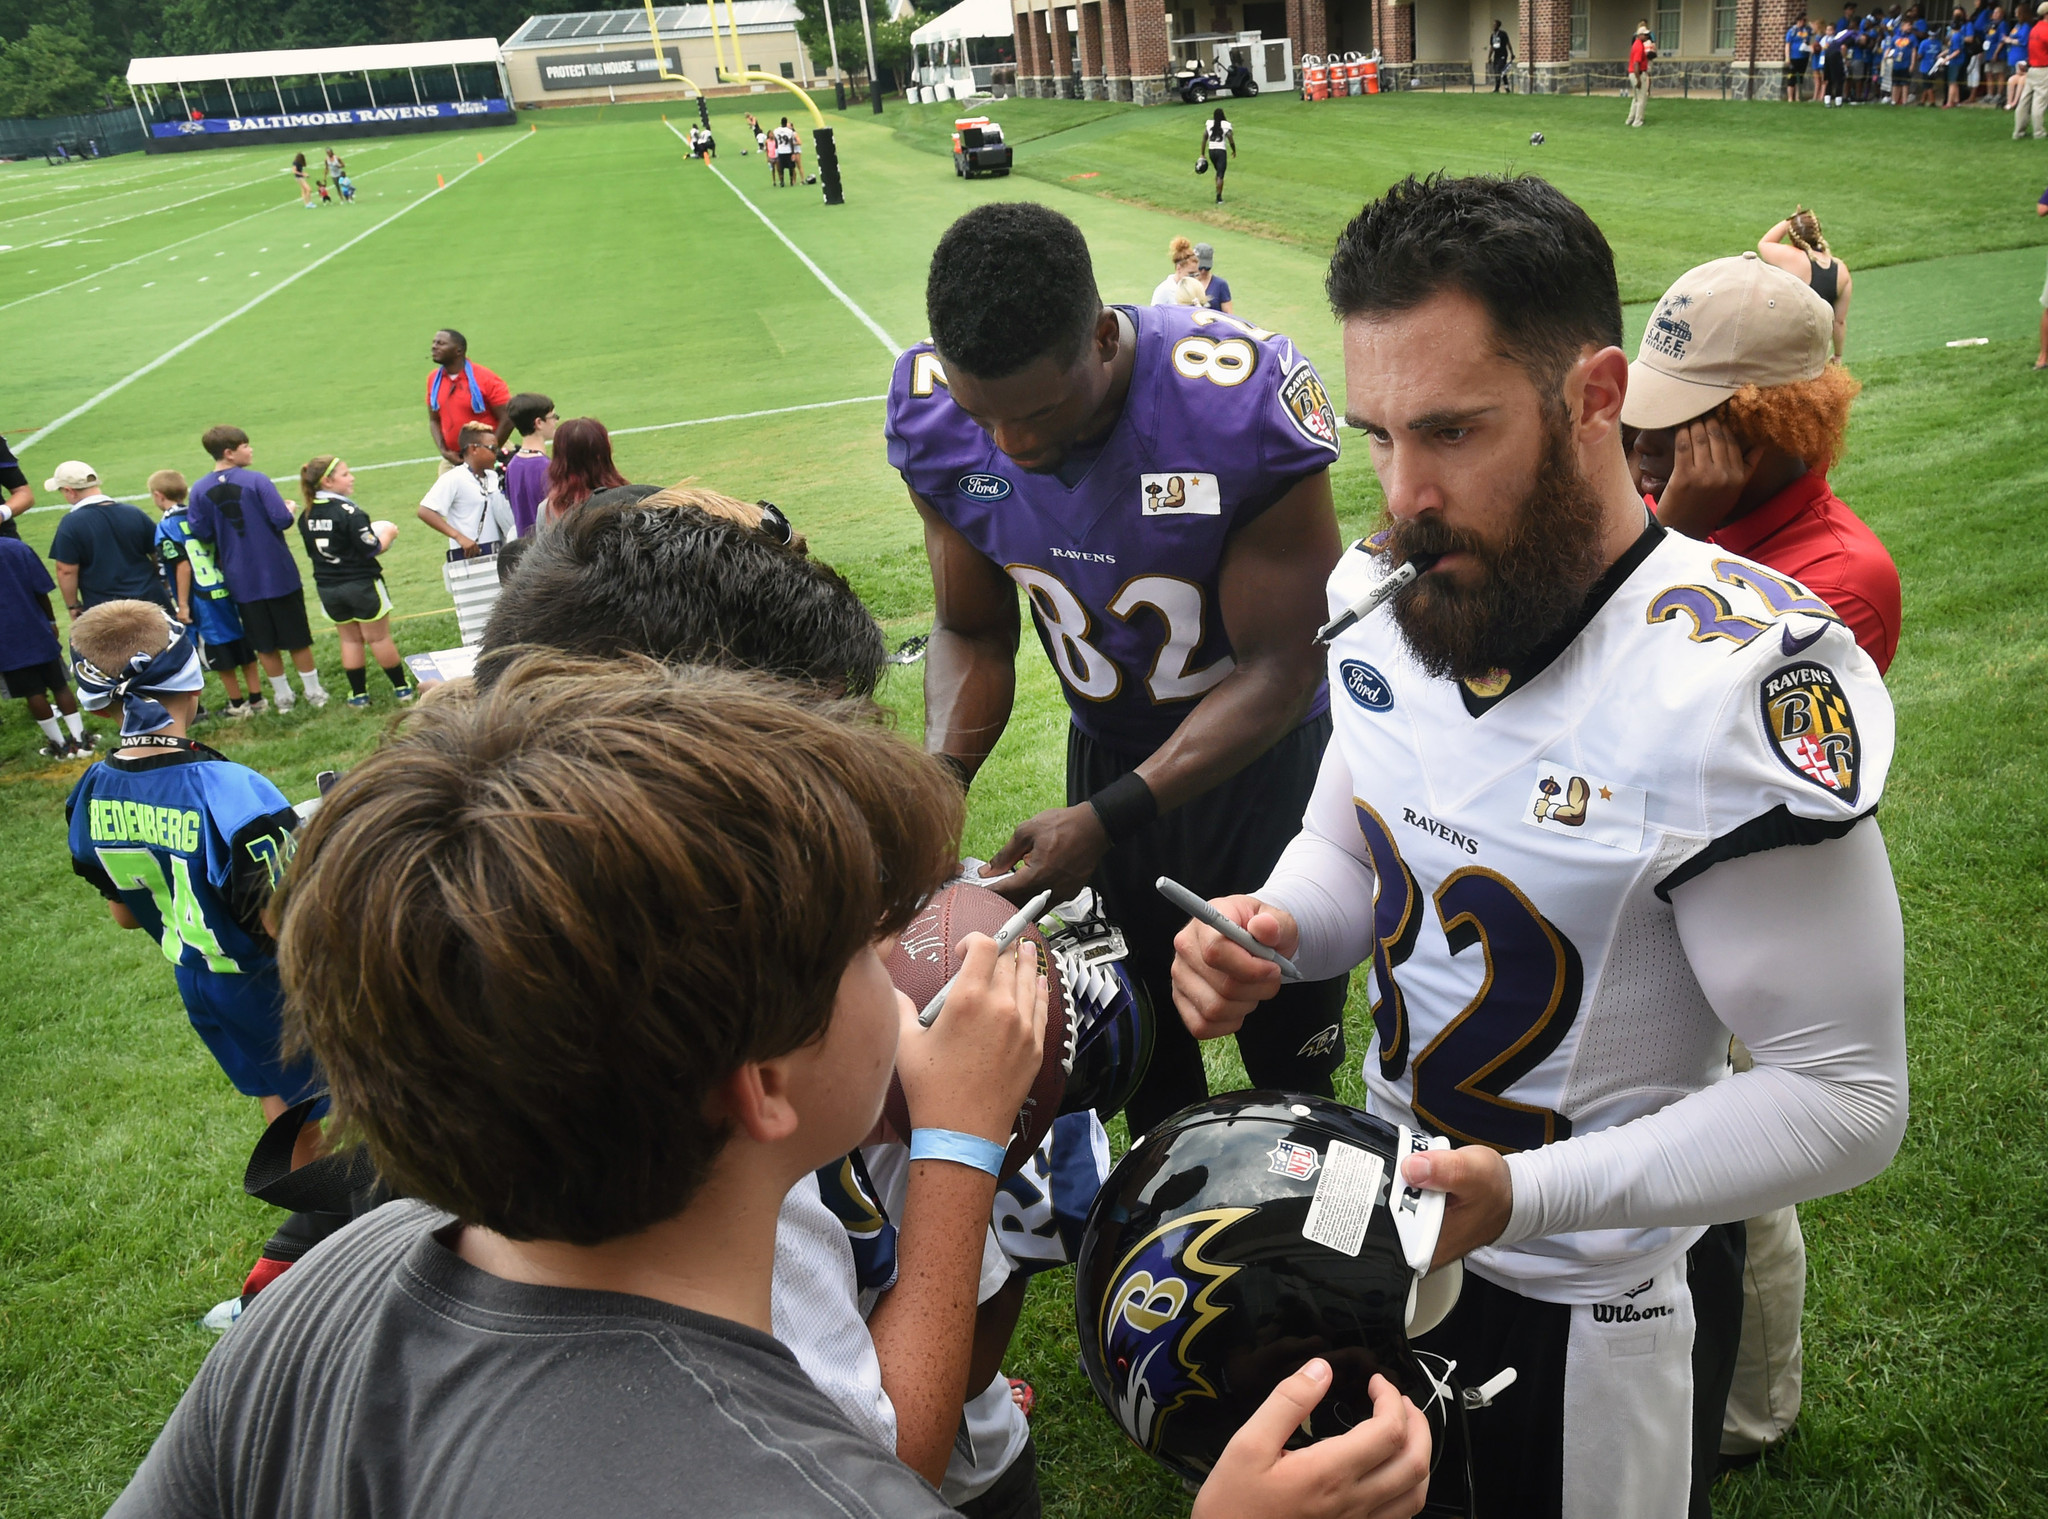 Bs-sp-ravens-training-camp-day-1-0729-20160728